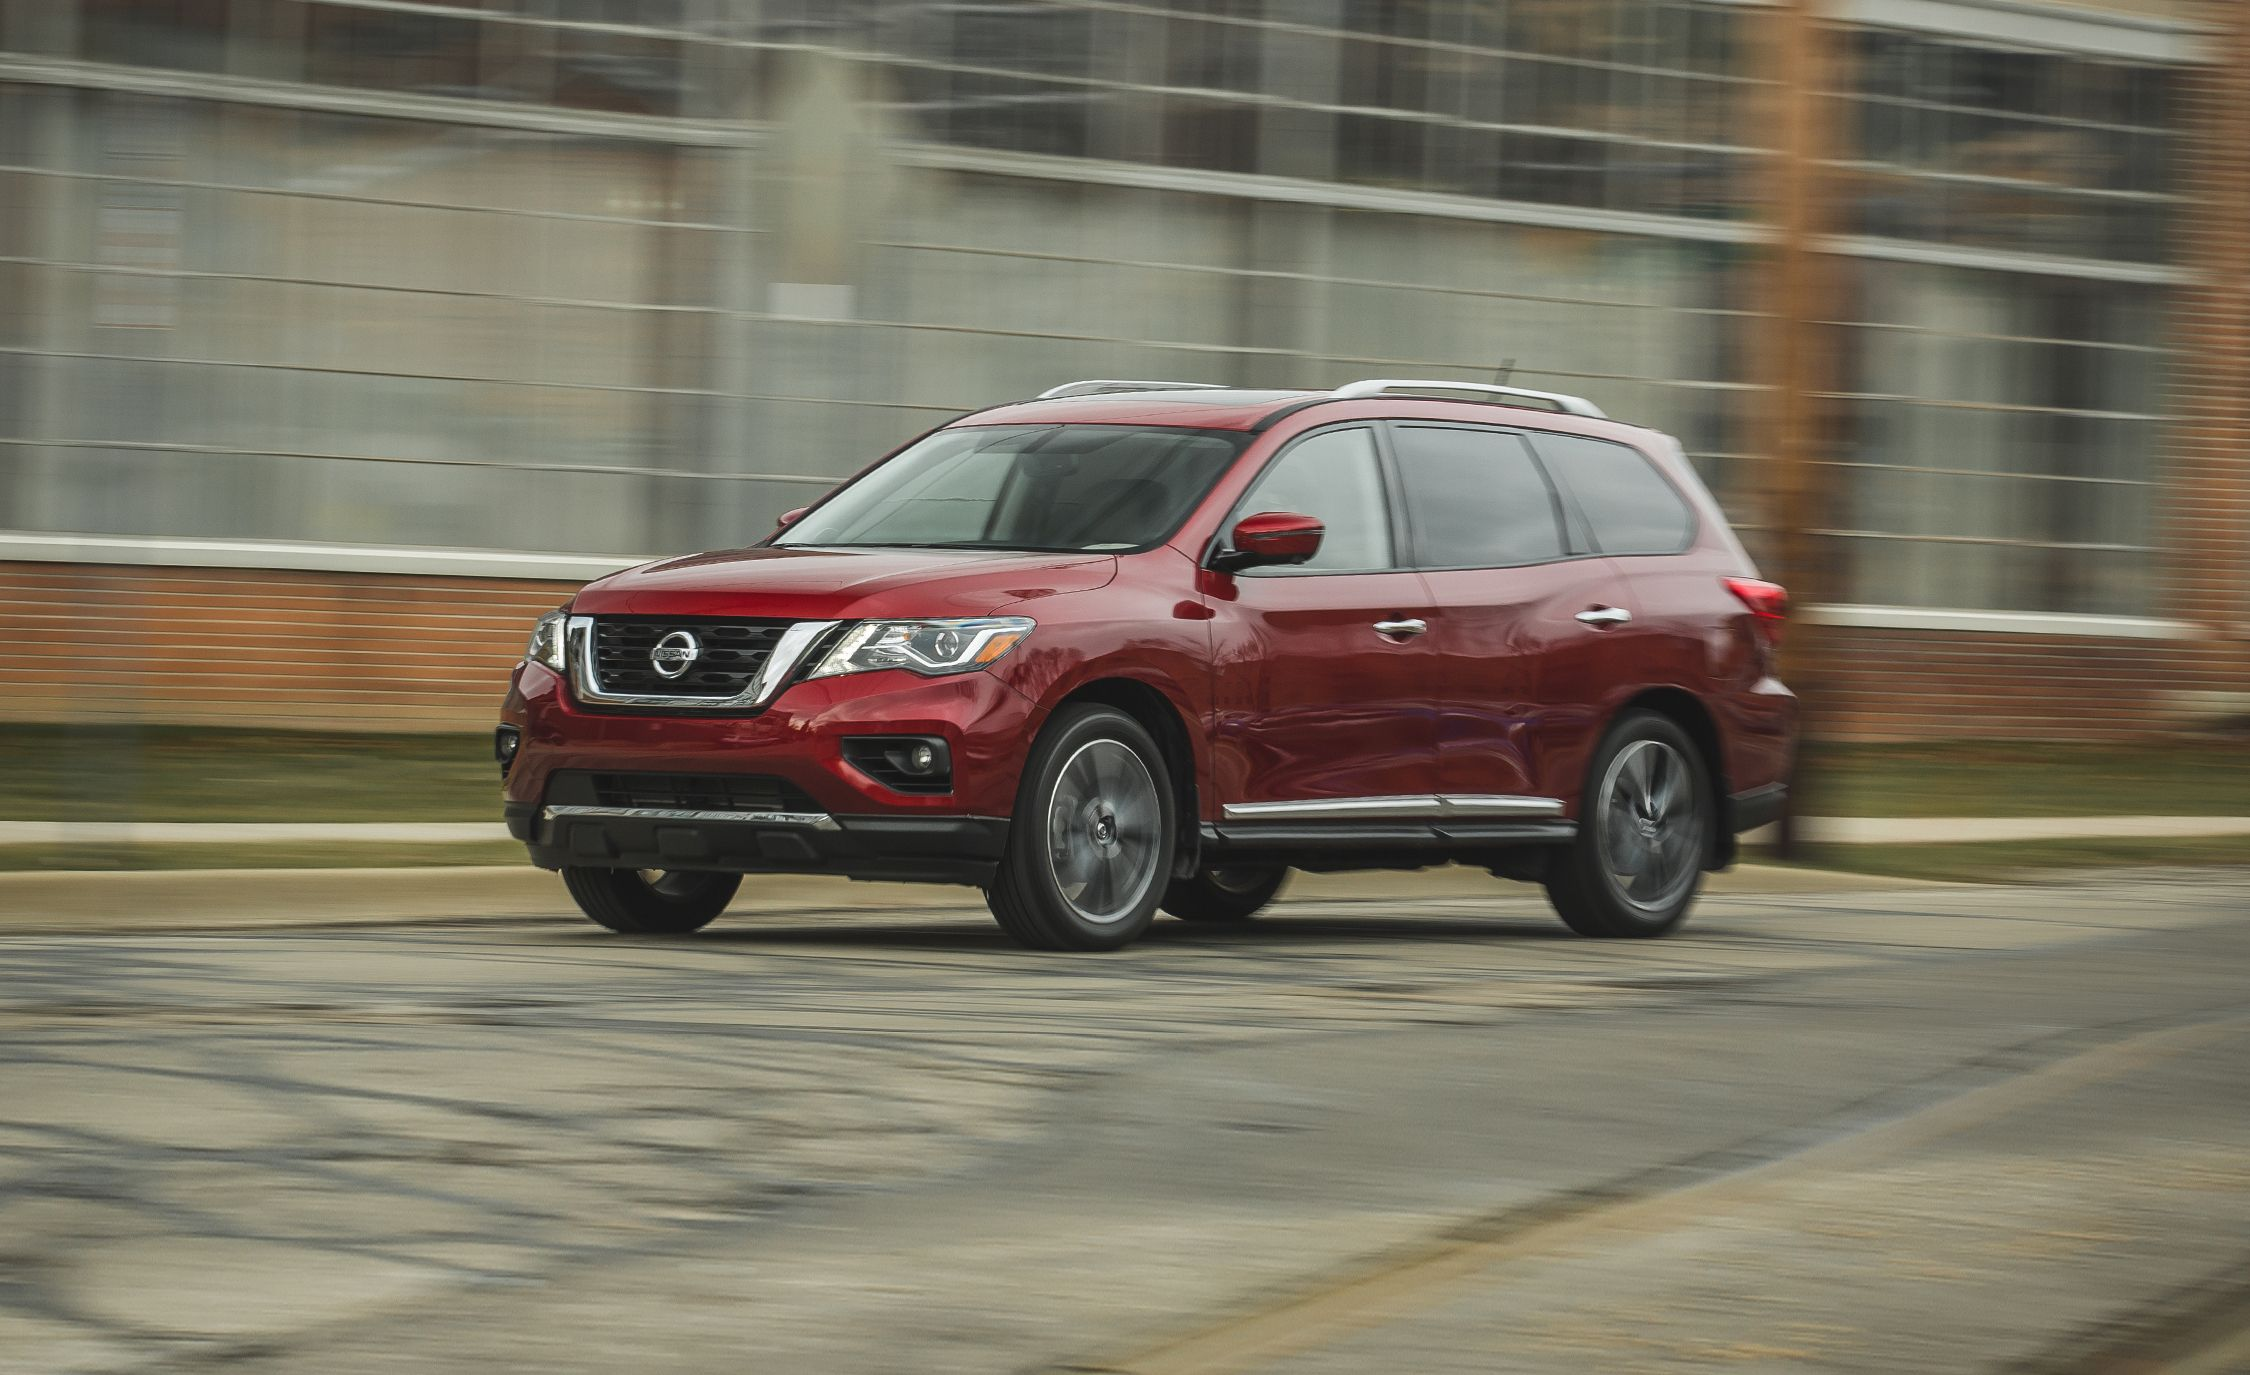 Nissan Pathfinder Reviews | Nissan Pathfinder Price, Photos, and ...